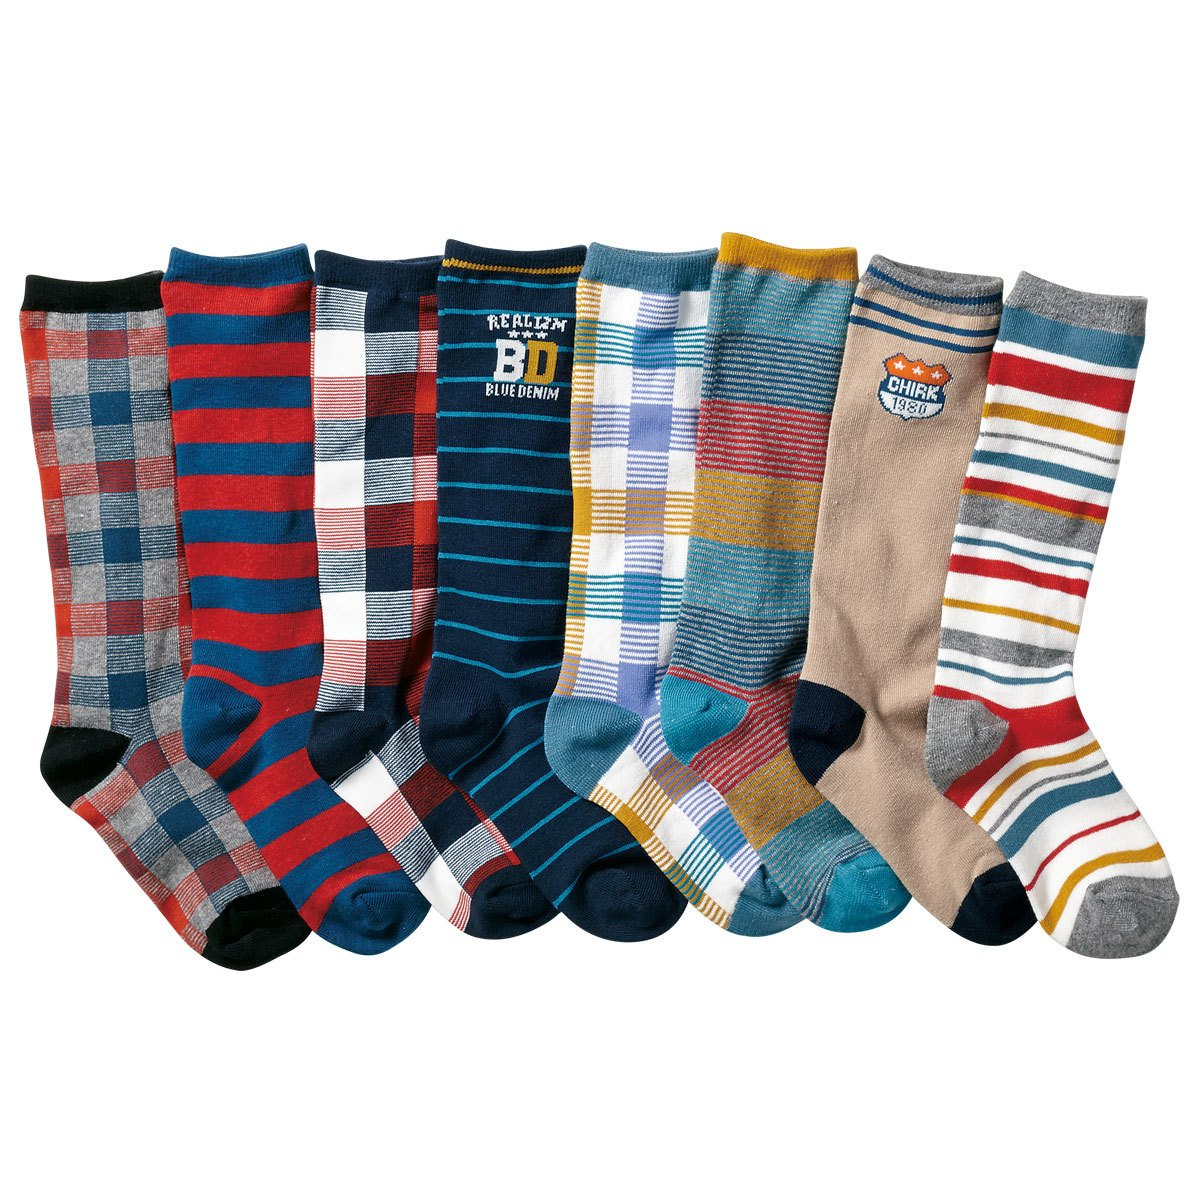 Boys Knee High Tube Socks Fashion Strip Comfort Cotton Stockings Socks 8 Pair Czofnjesi